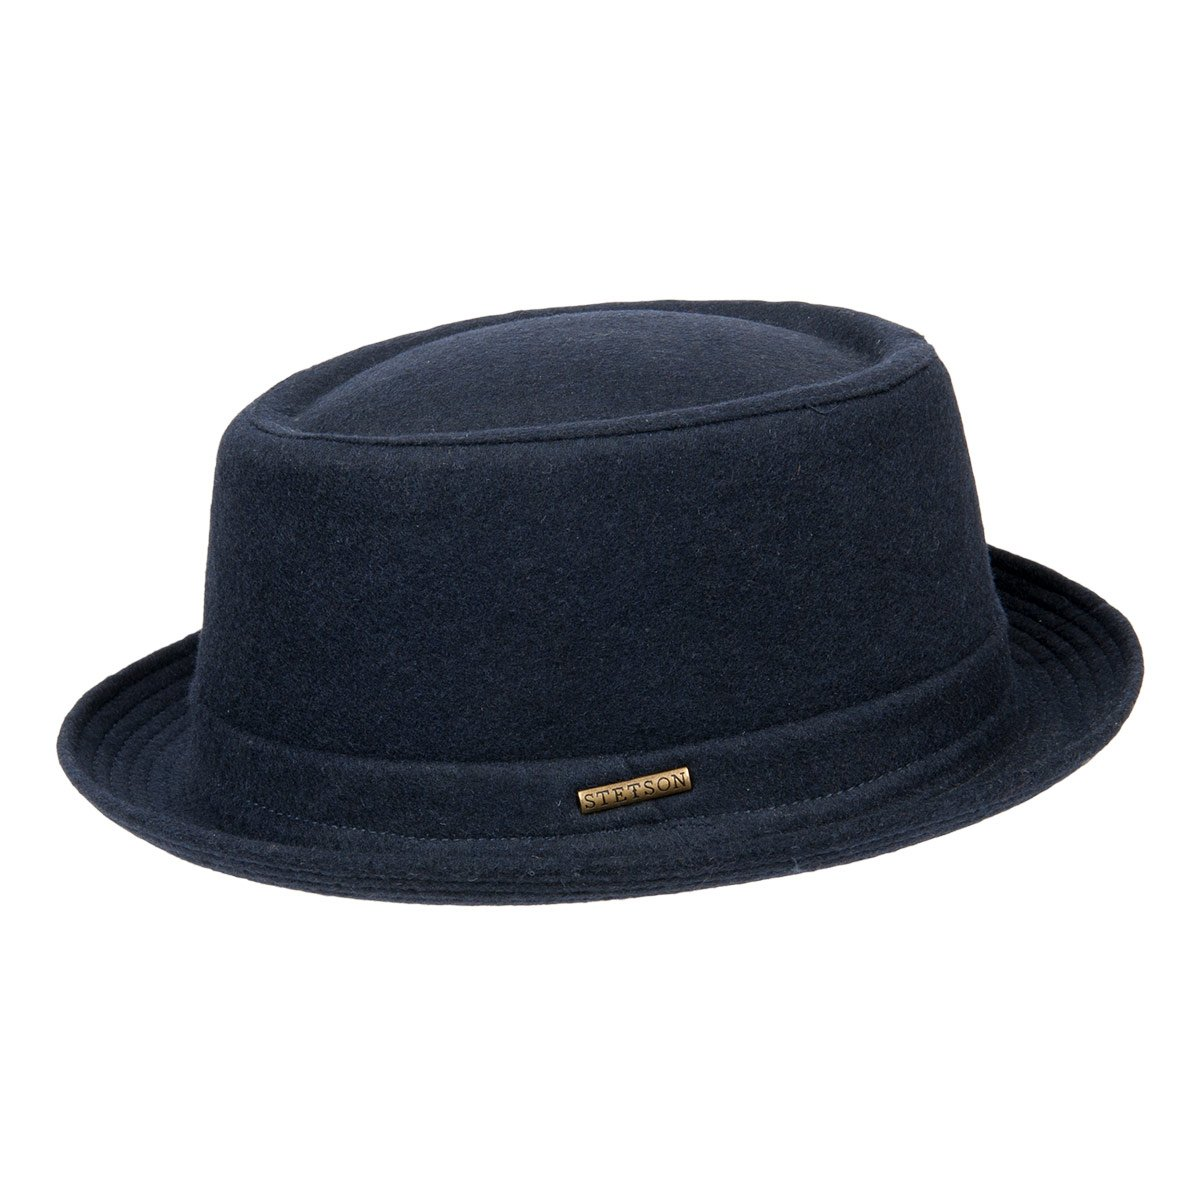 52775abf45c Pork Pie Wool hat with lining in cotton by STETSON